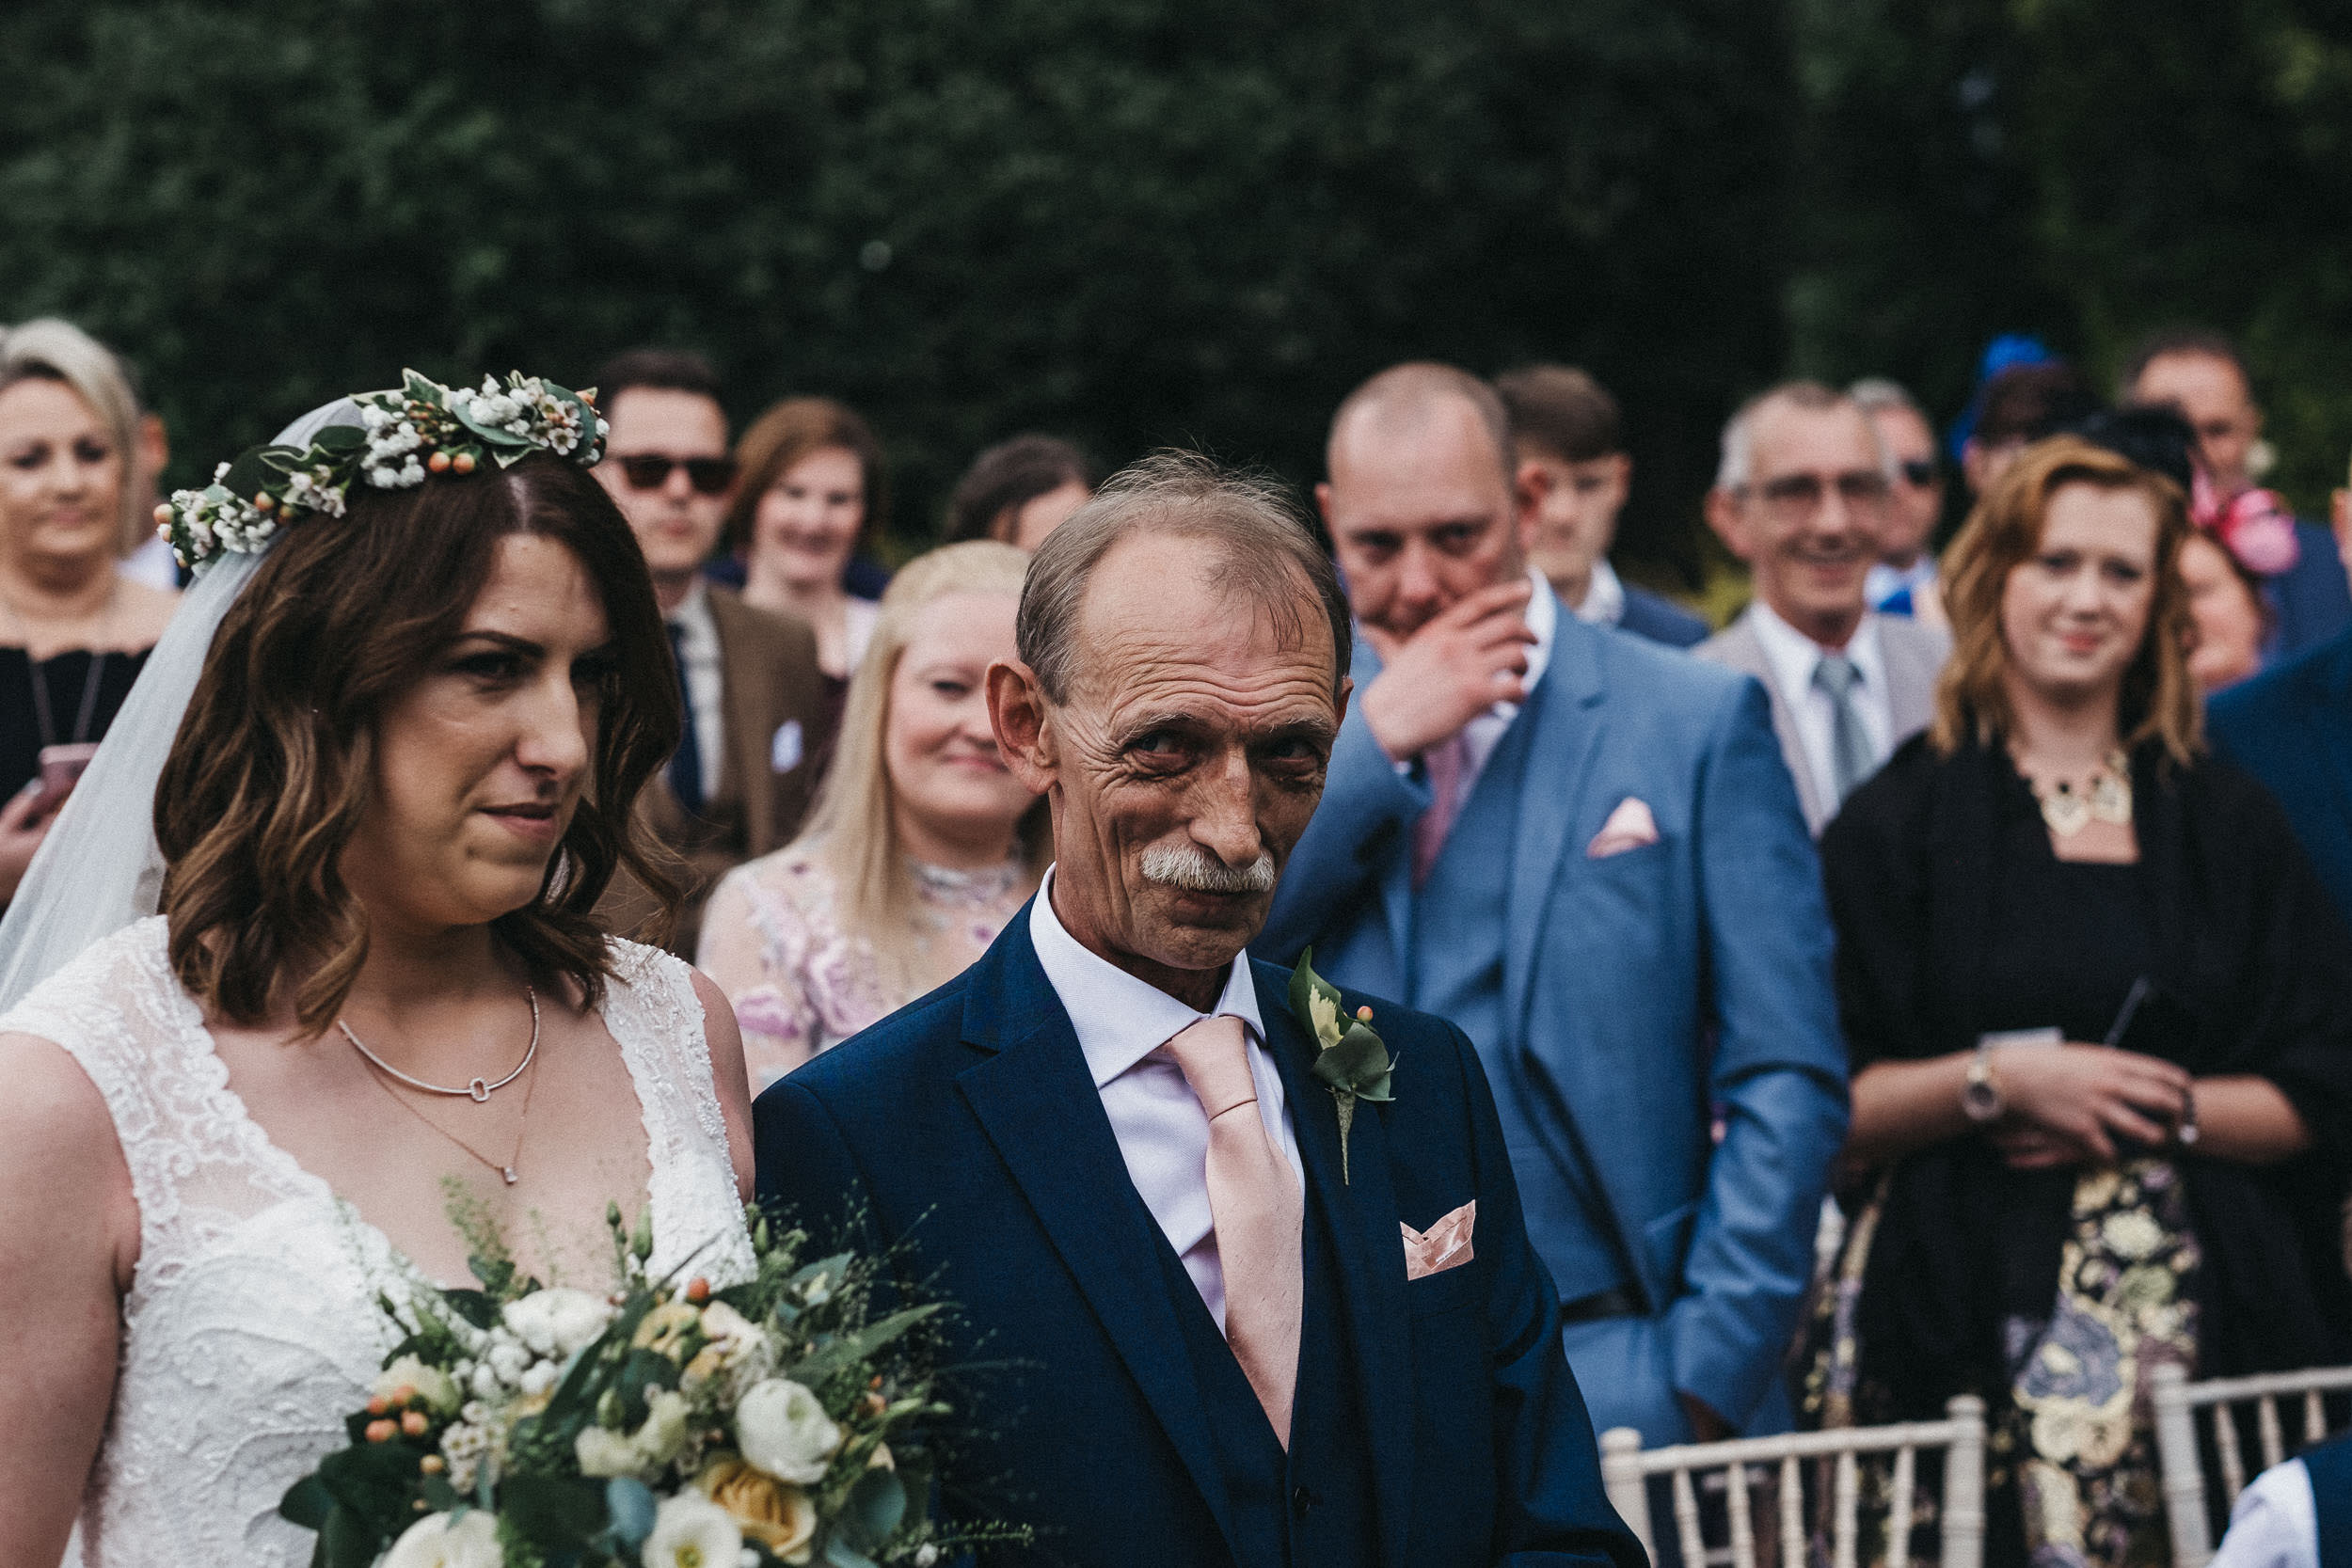 Father of bride gives cheeky smirk to groom